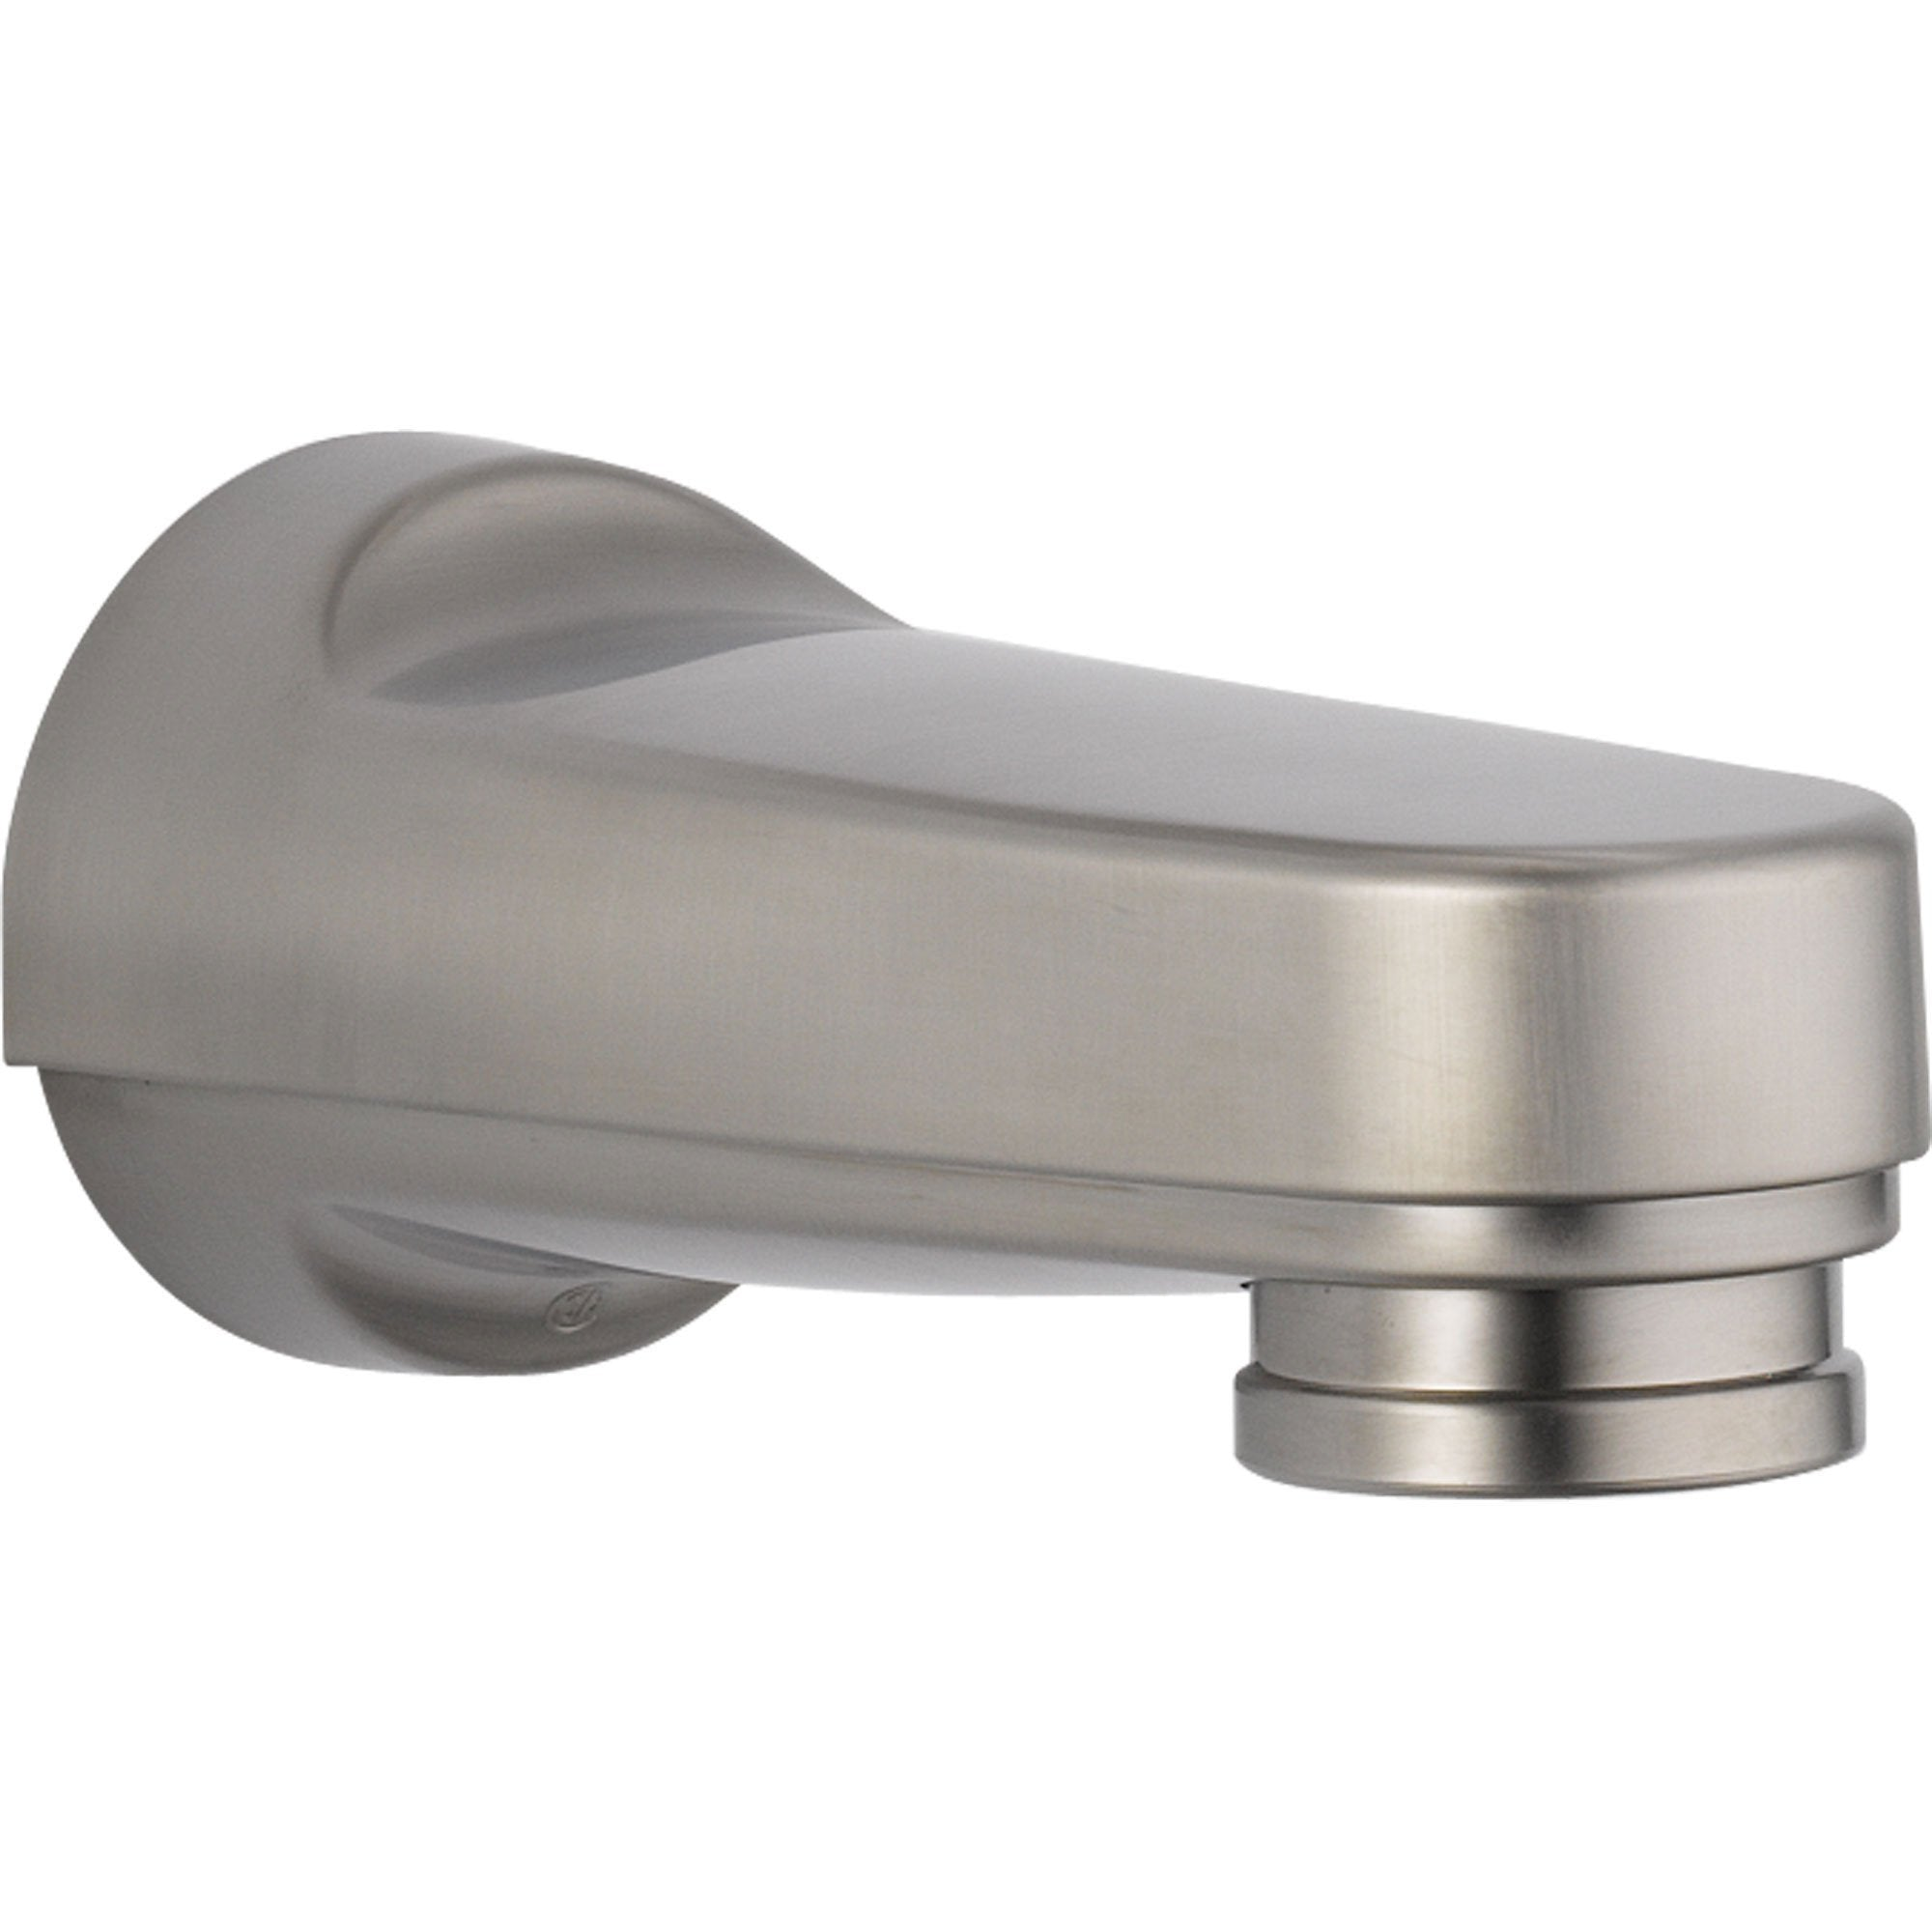 Delta Innovations Stainless Steel Finish Pull-down Diverter Tub Spout 725233